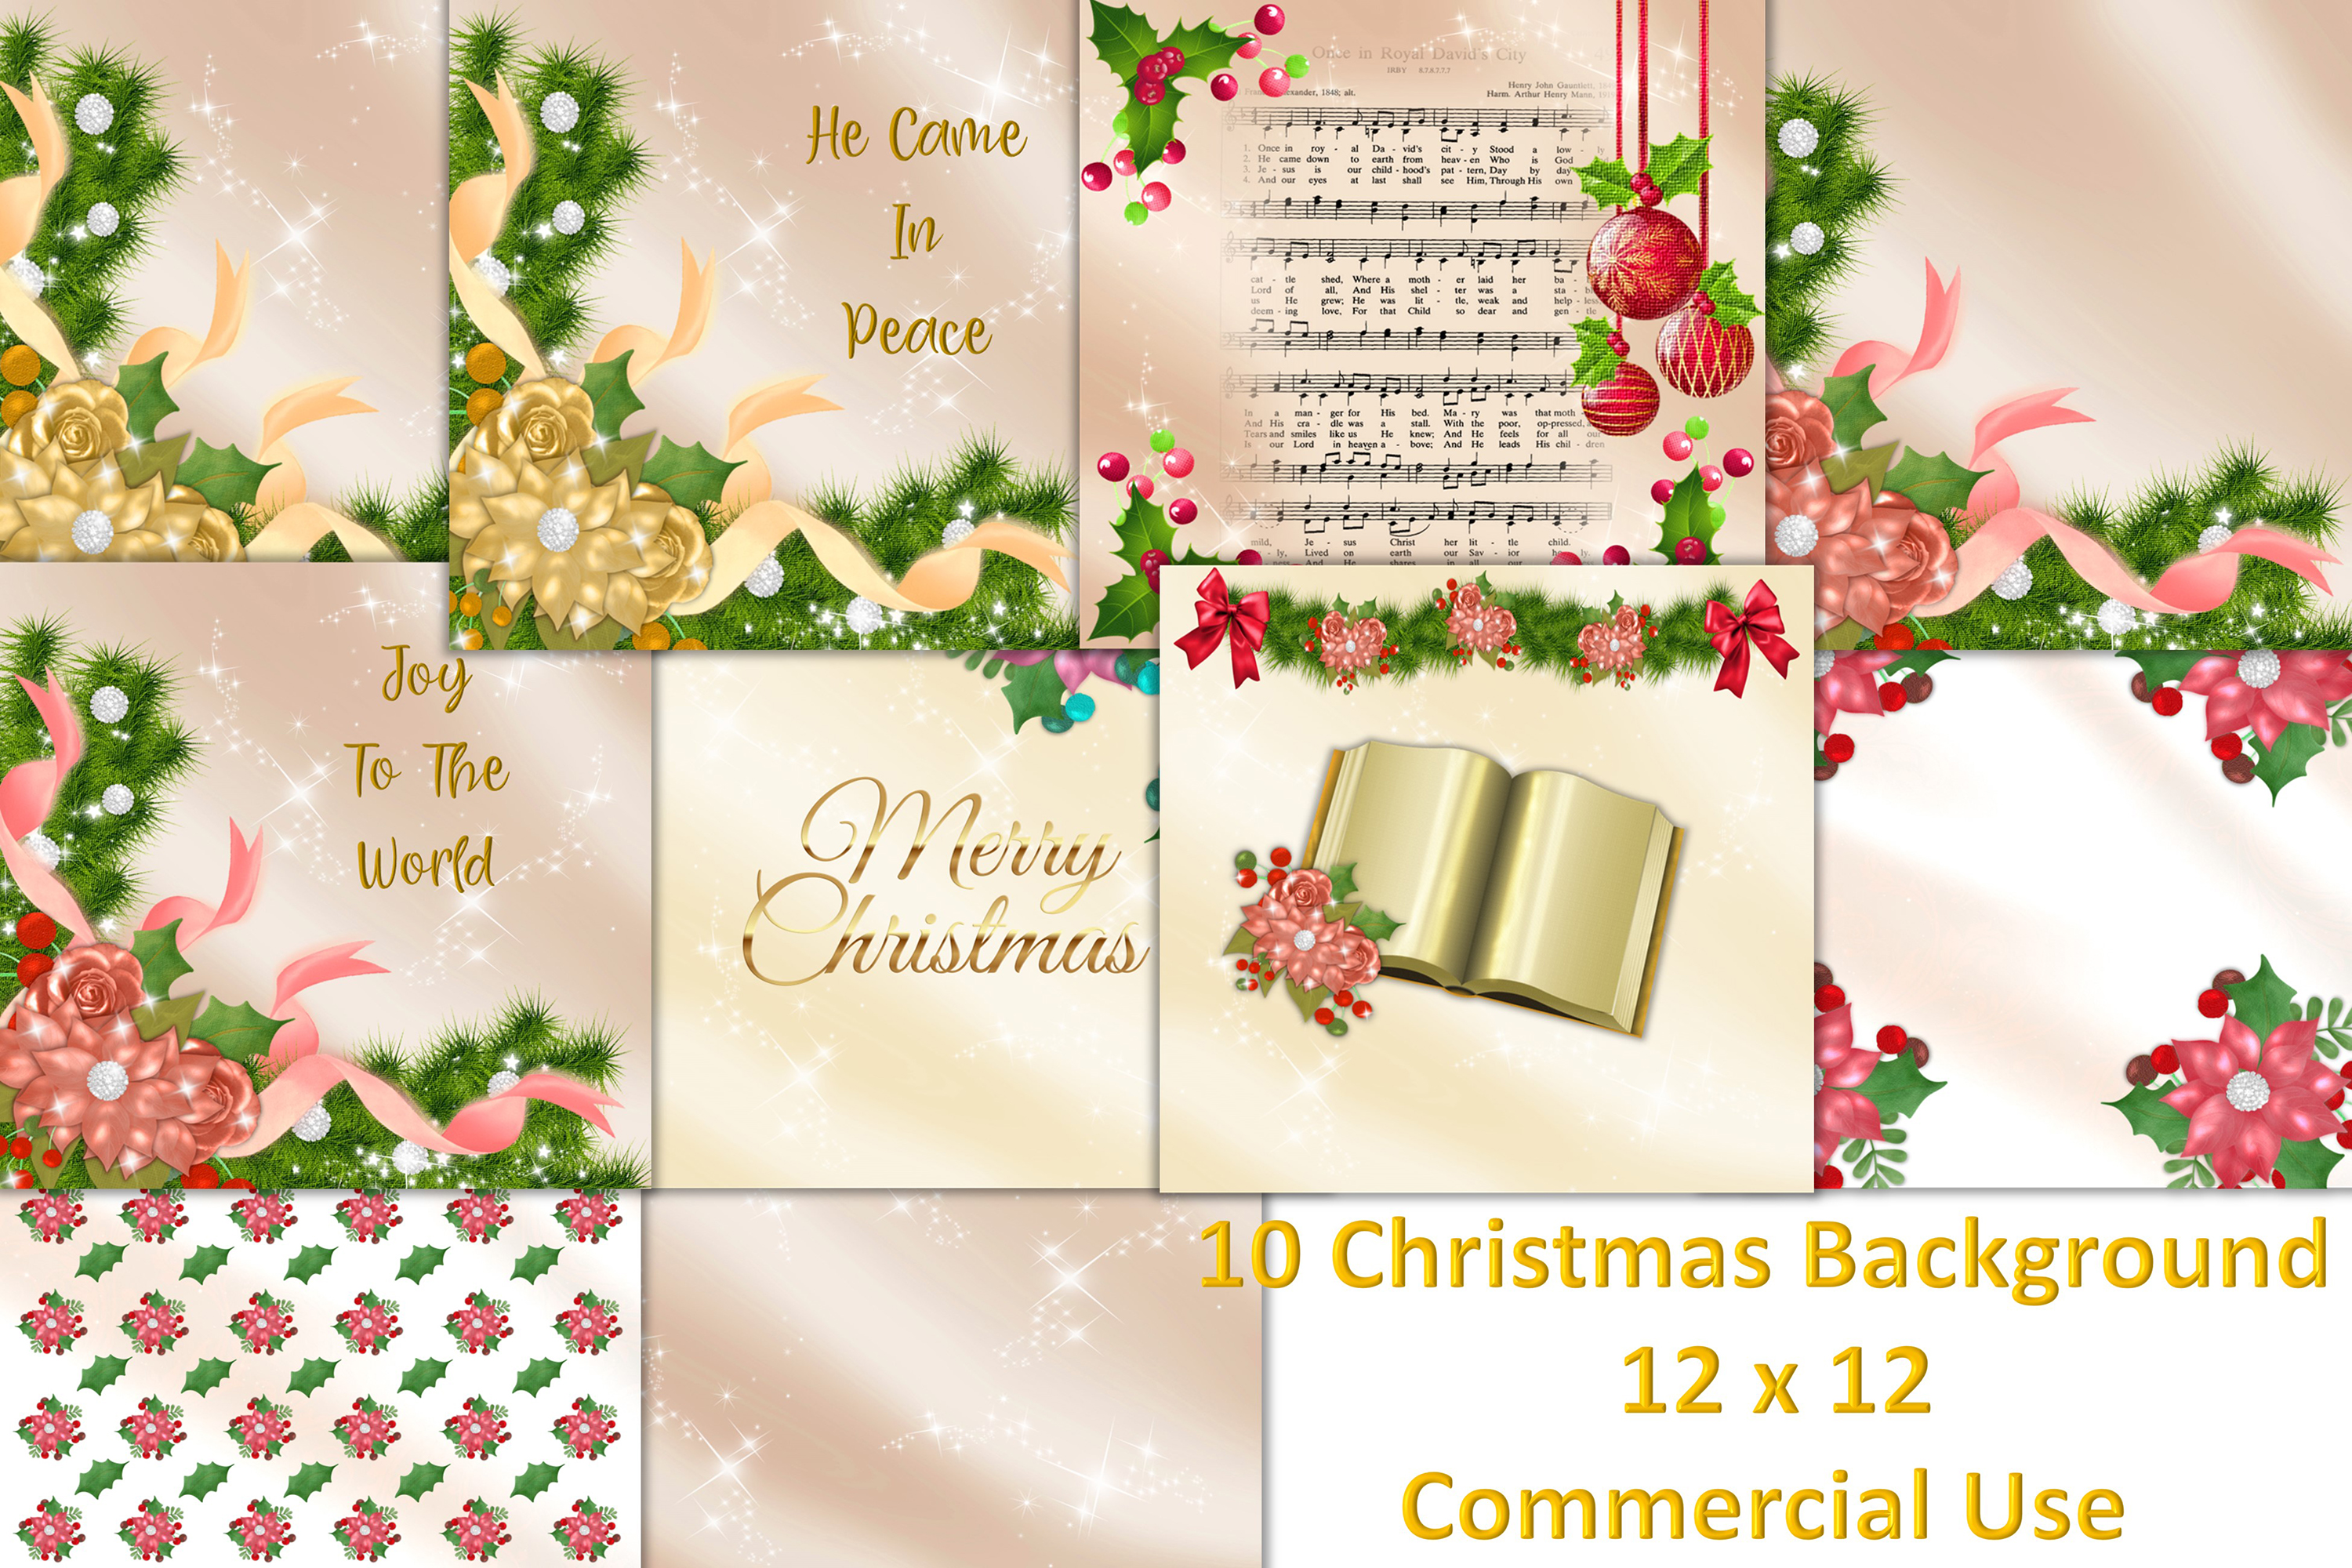 12x12 Backgrounds Christmas Scrapbooking Commercial Use example image 1